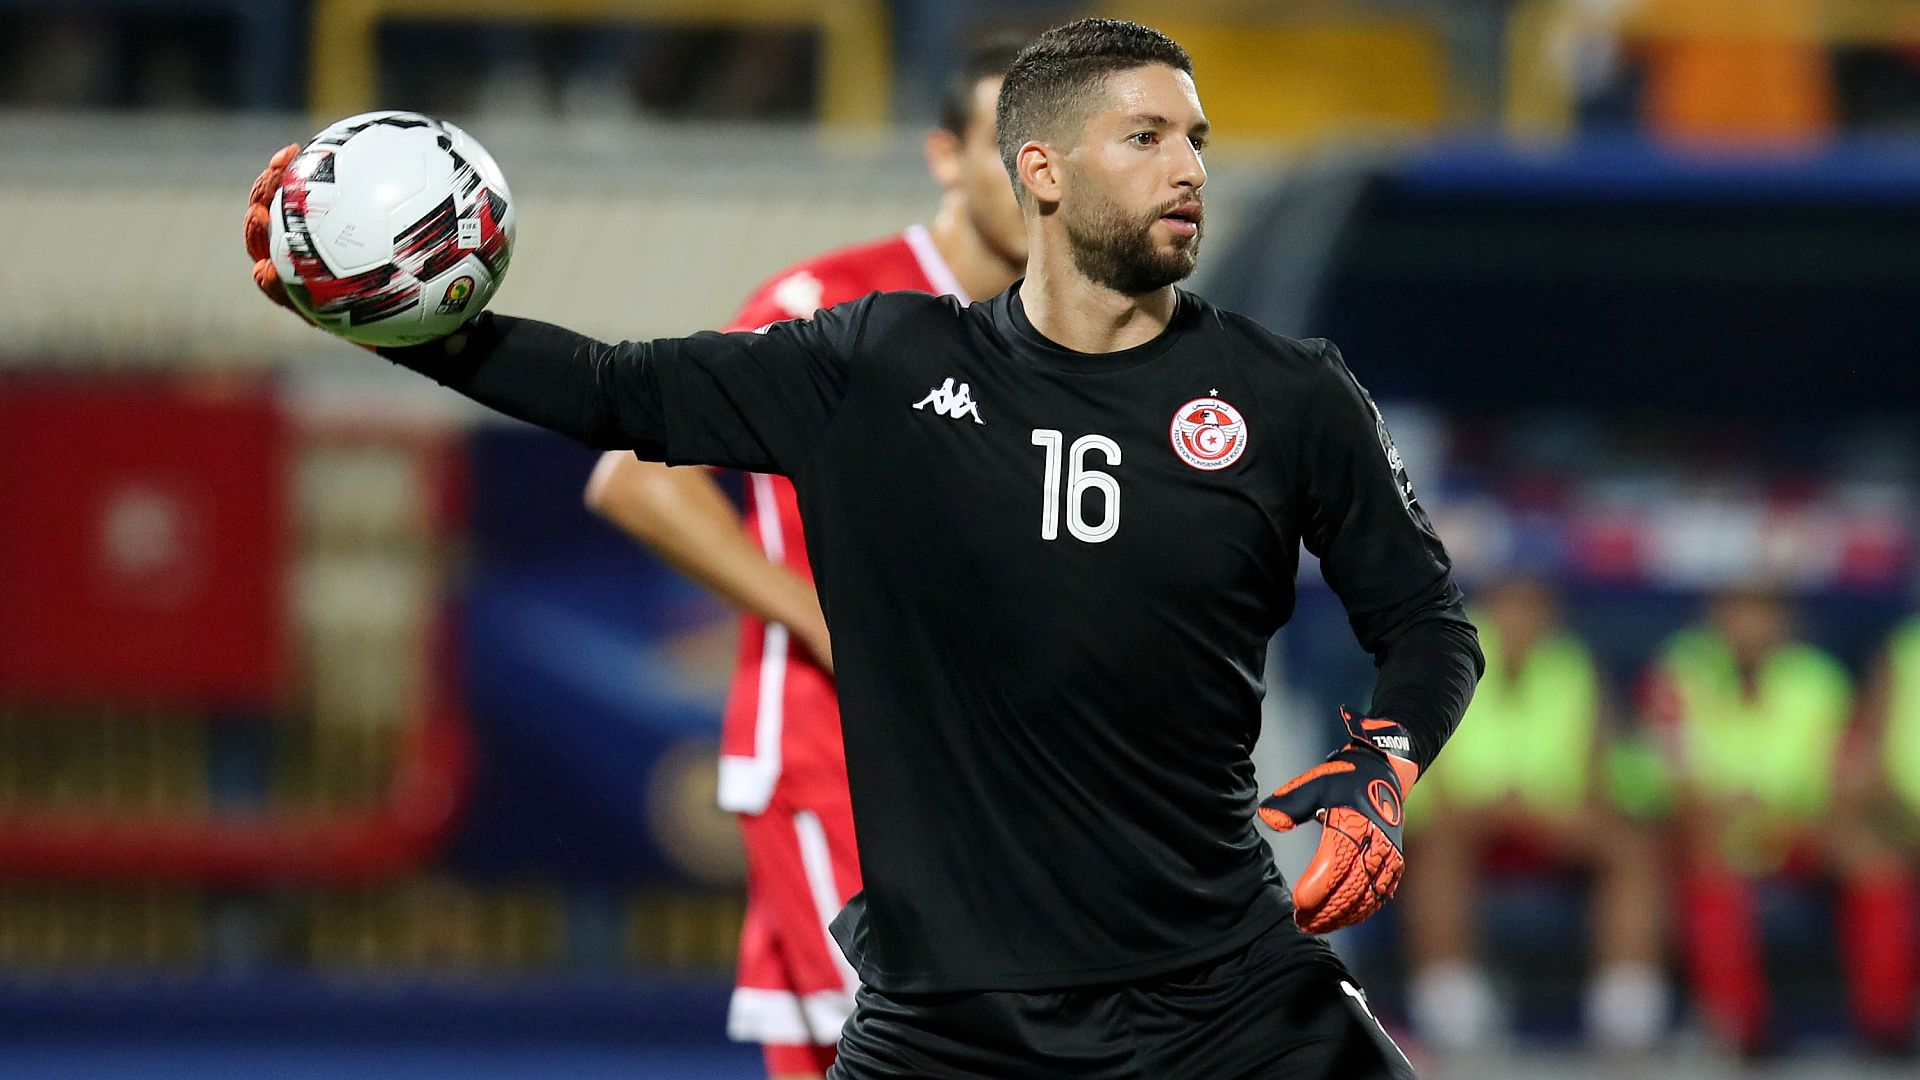 Afcon 2019: Tunisia's Mouez Hassen and Youssef Msakni ruled out of Nigeria clash